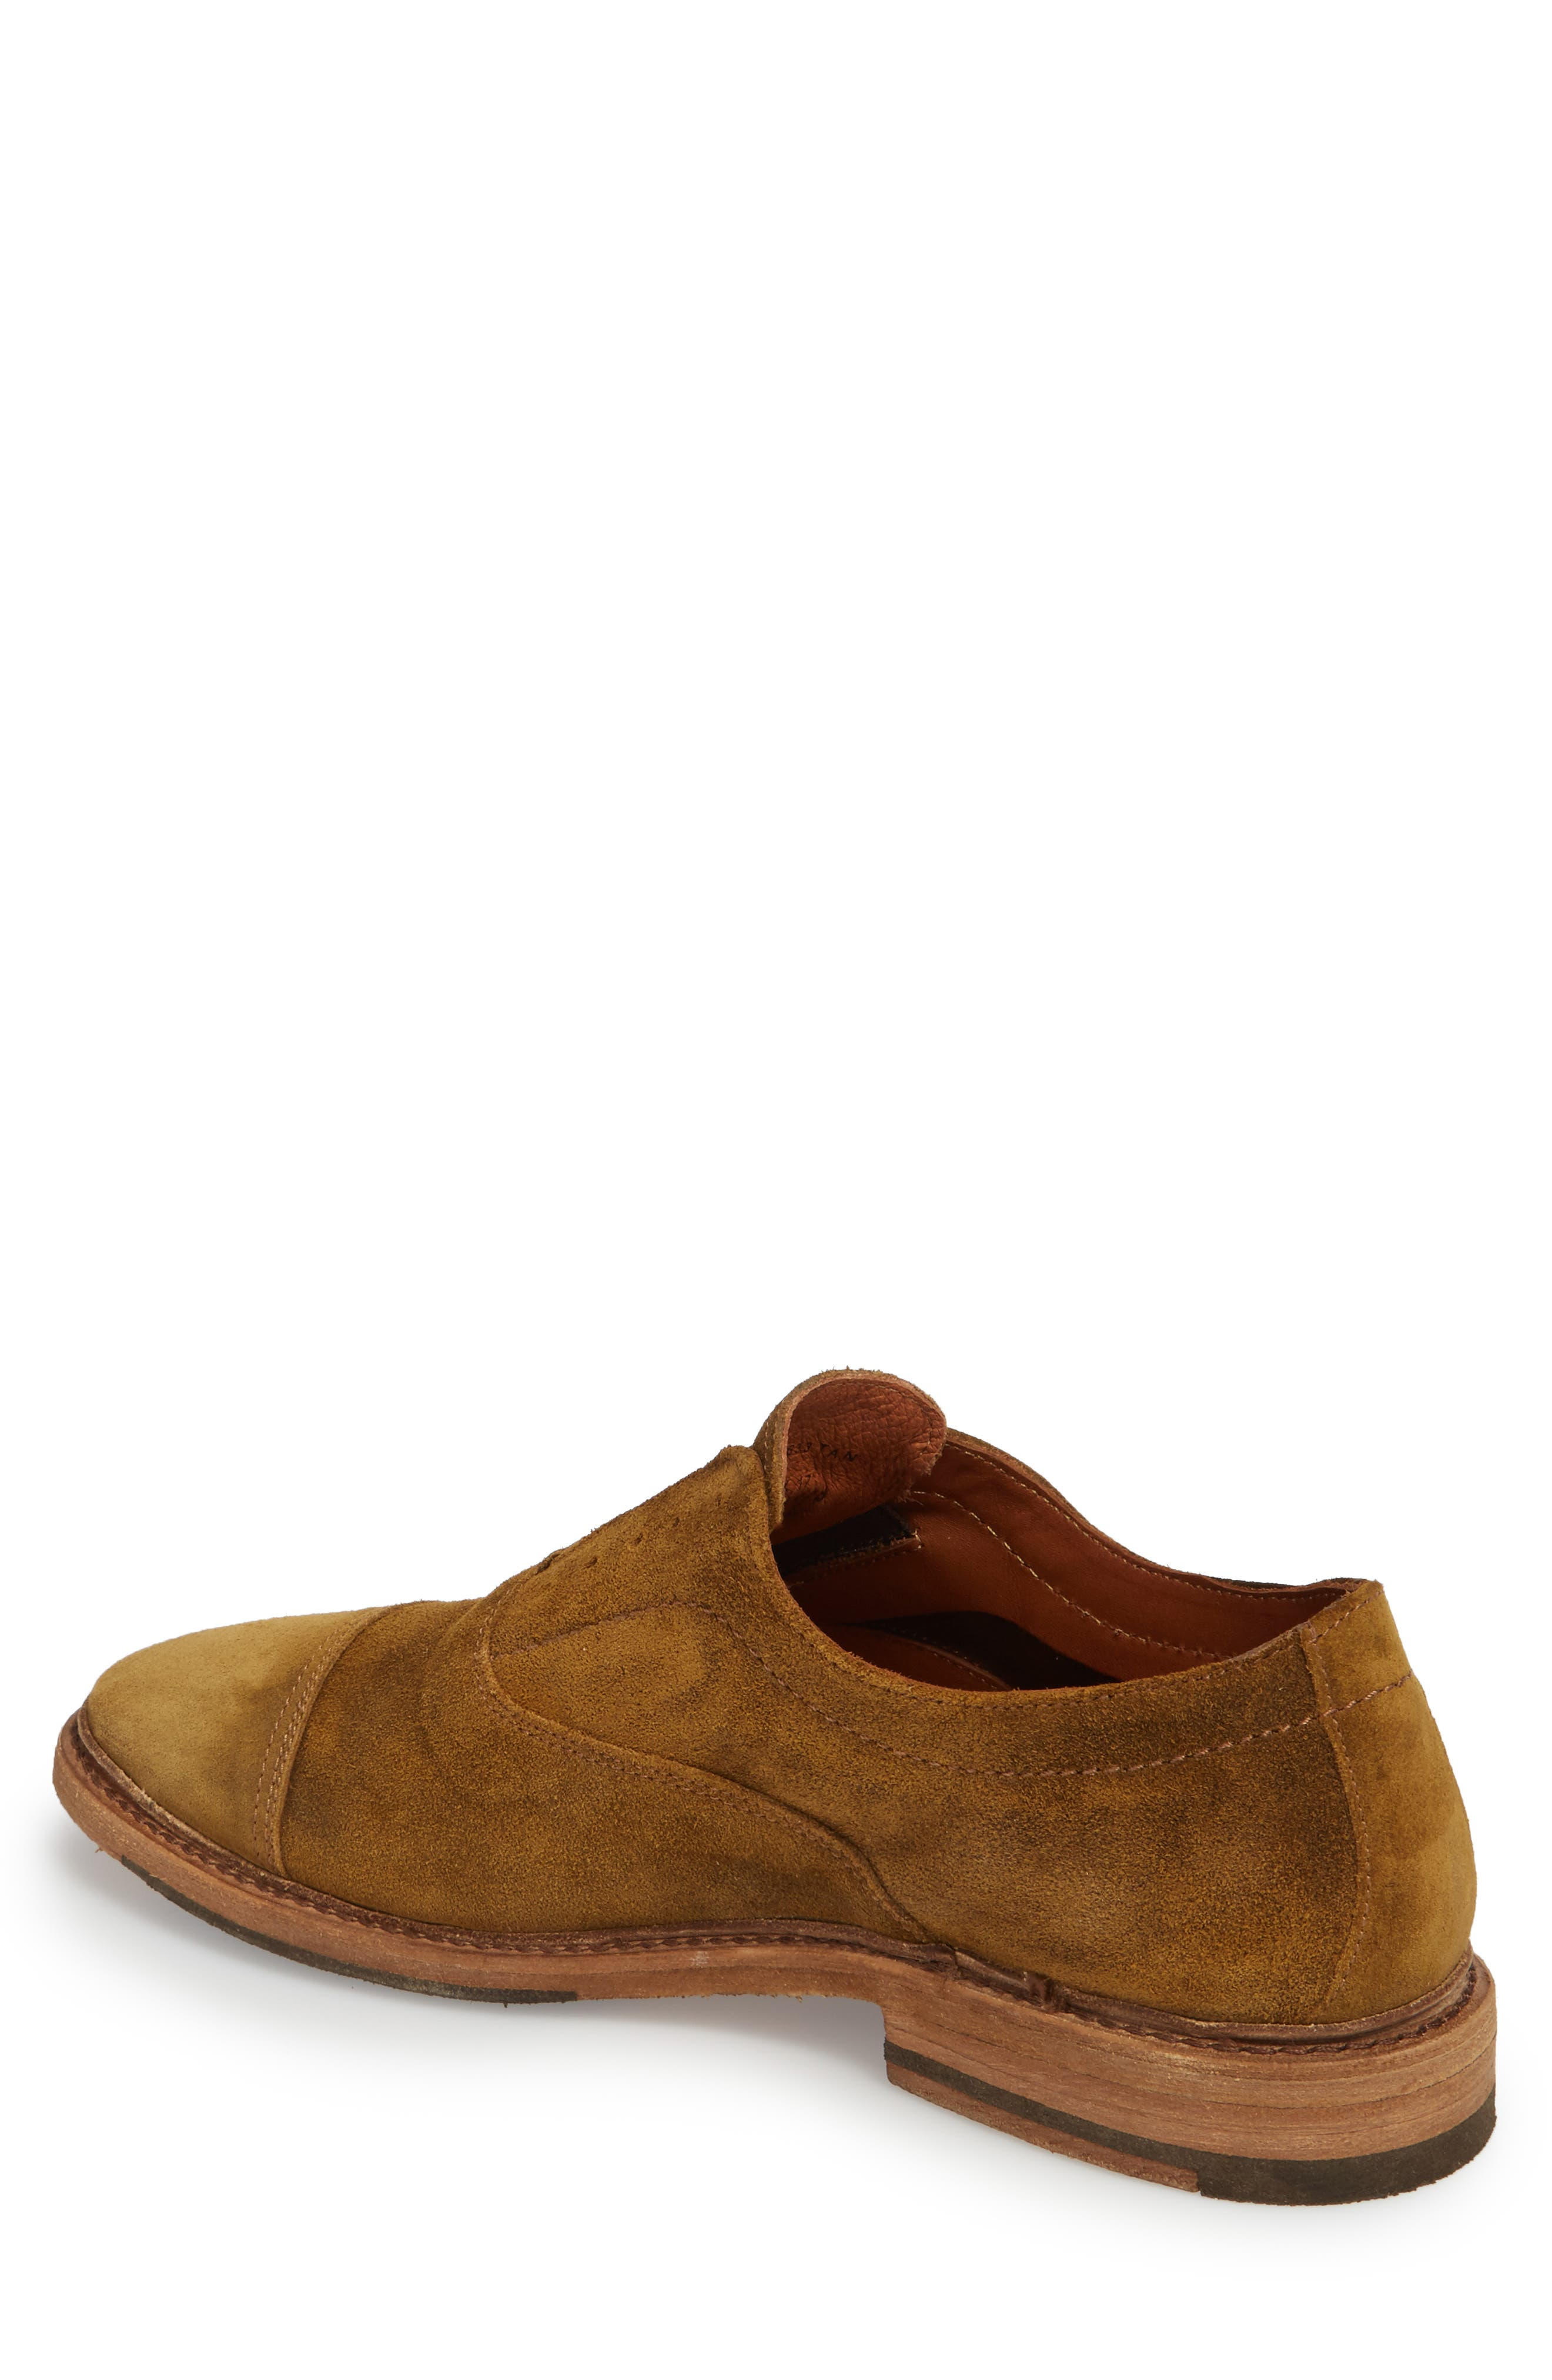 Paul Bal Cap Toe Oxford,                             Alternate thumbnail 4, color,